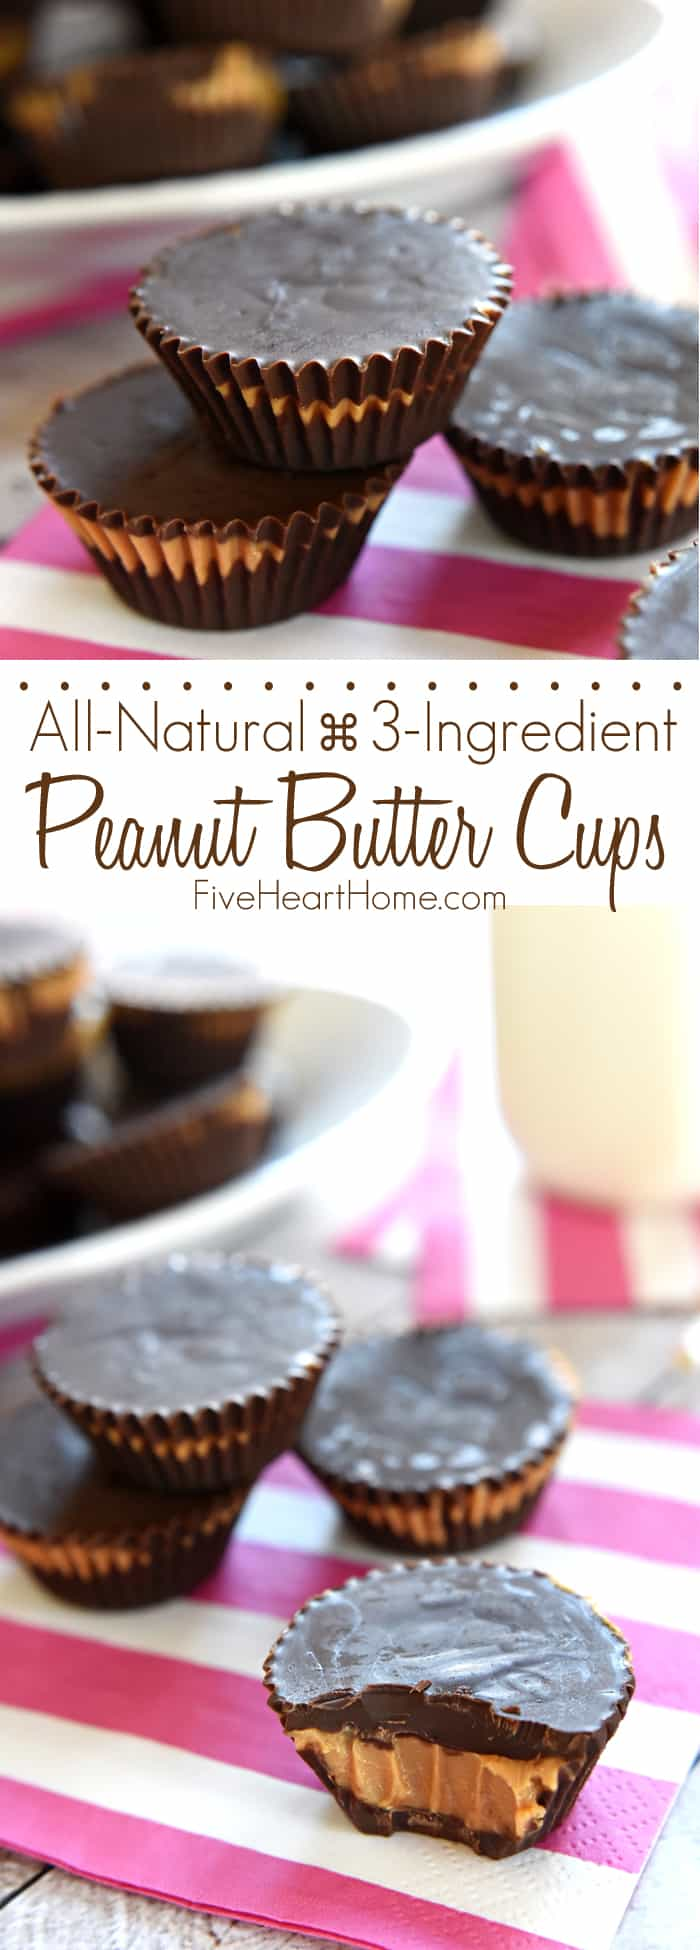 Homemade Peanut Butter Cups ~ these easy, all-natural peanut butter cups whip up with just three ingredients! | FiveHeartHome.com via @fivehearthome